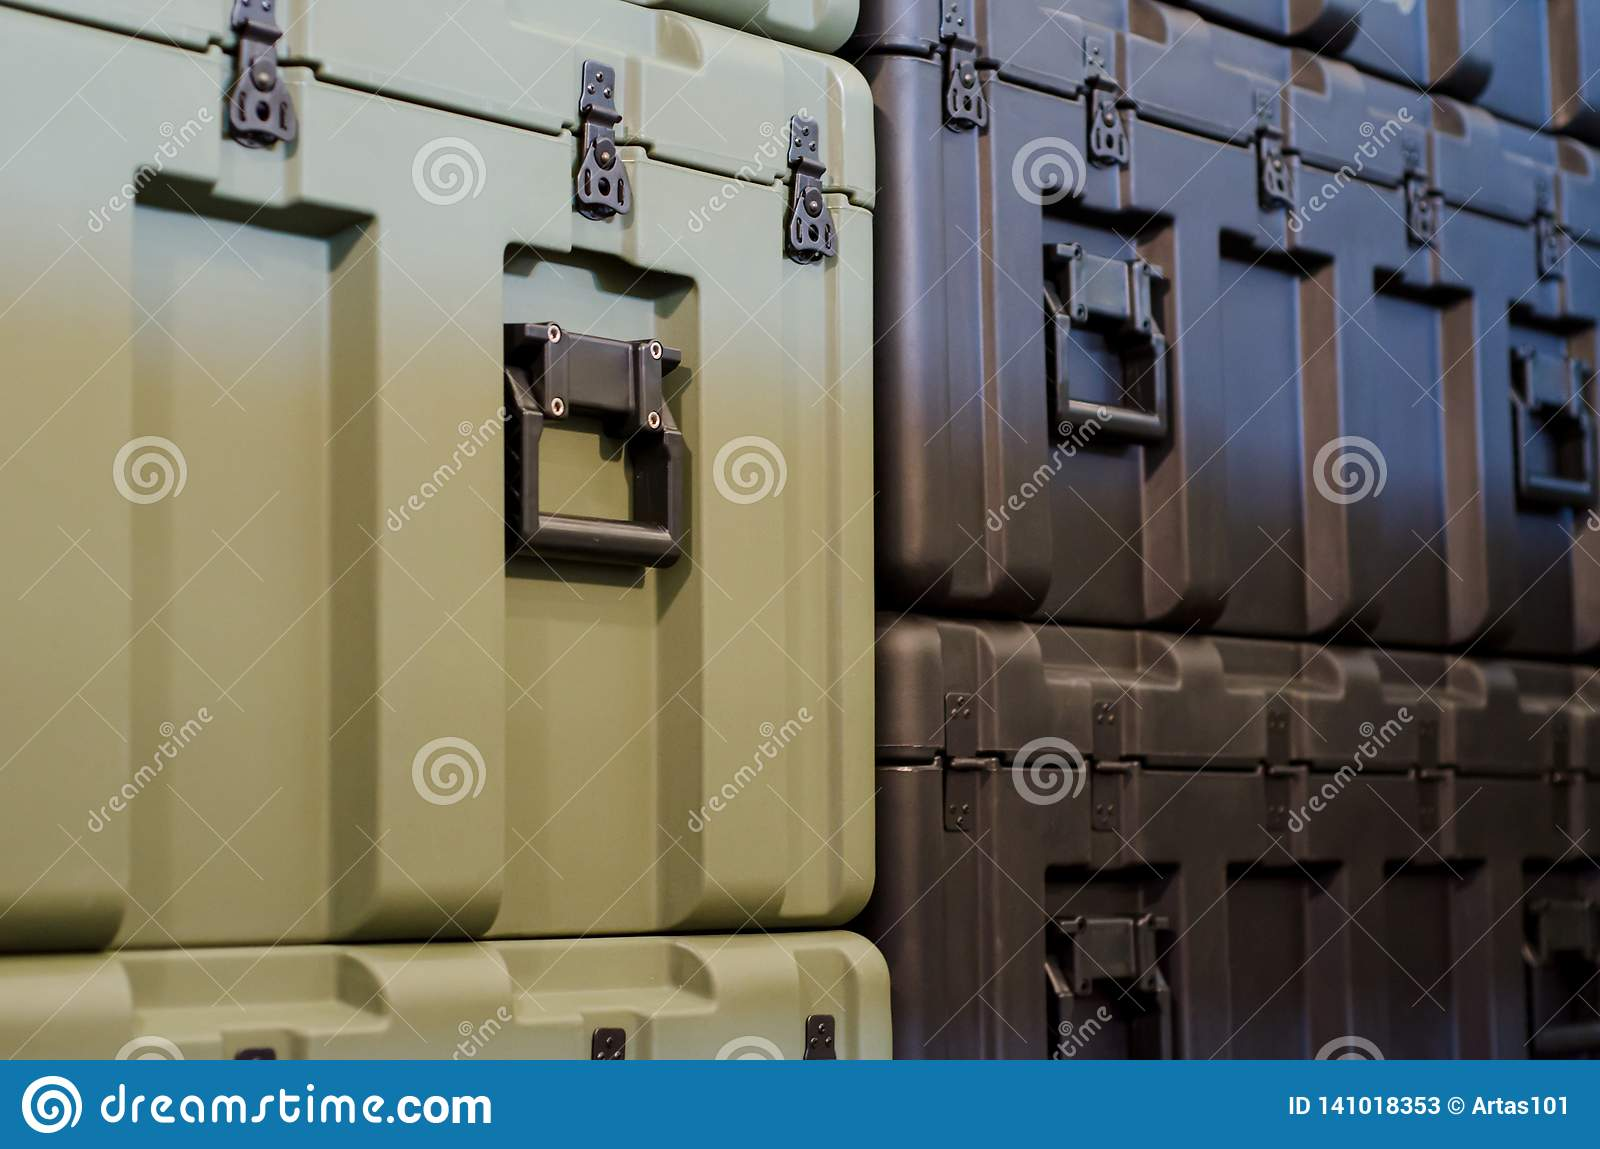 Case in warehouse